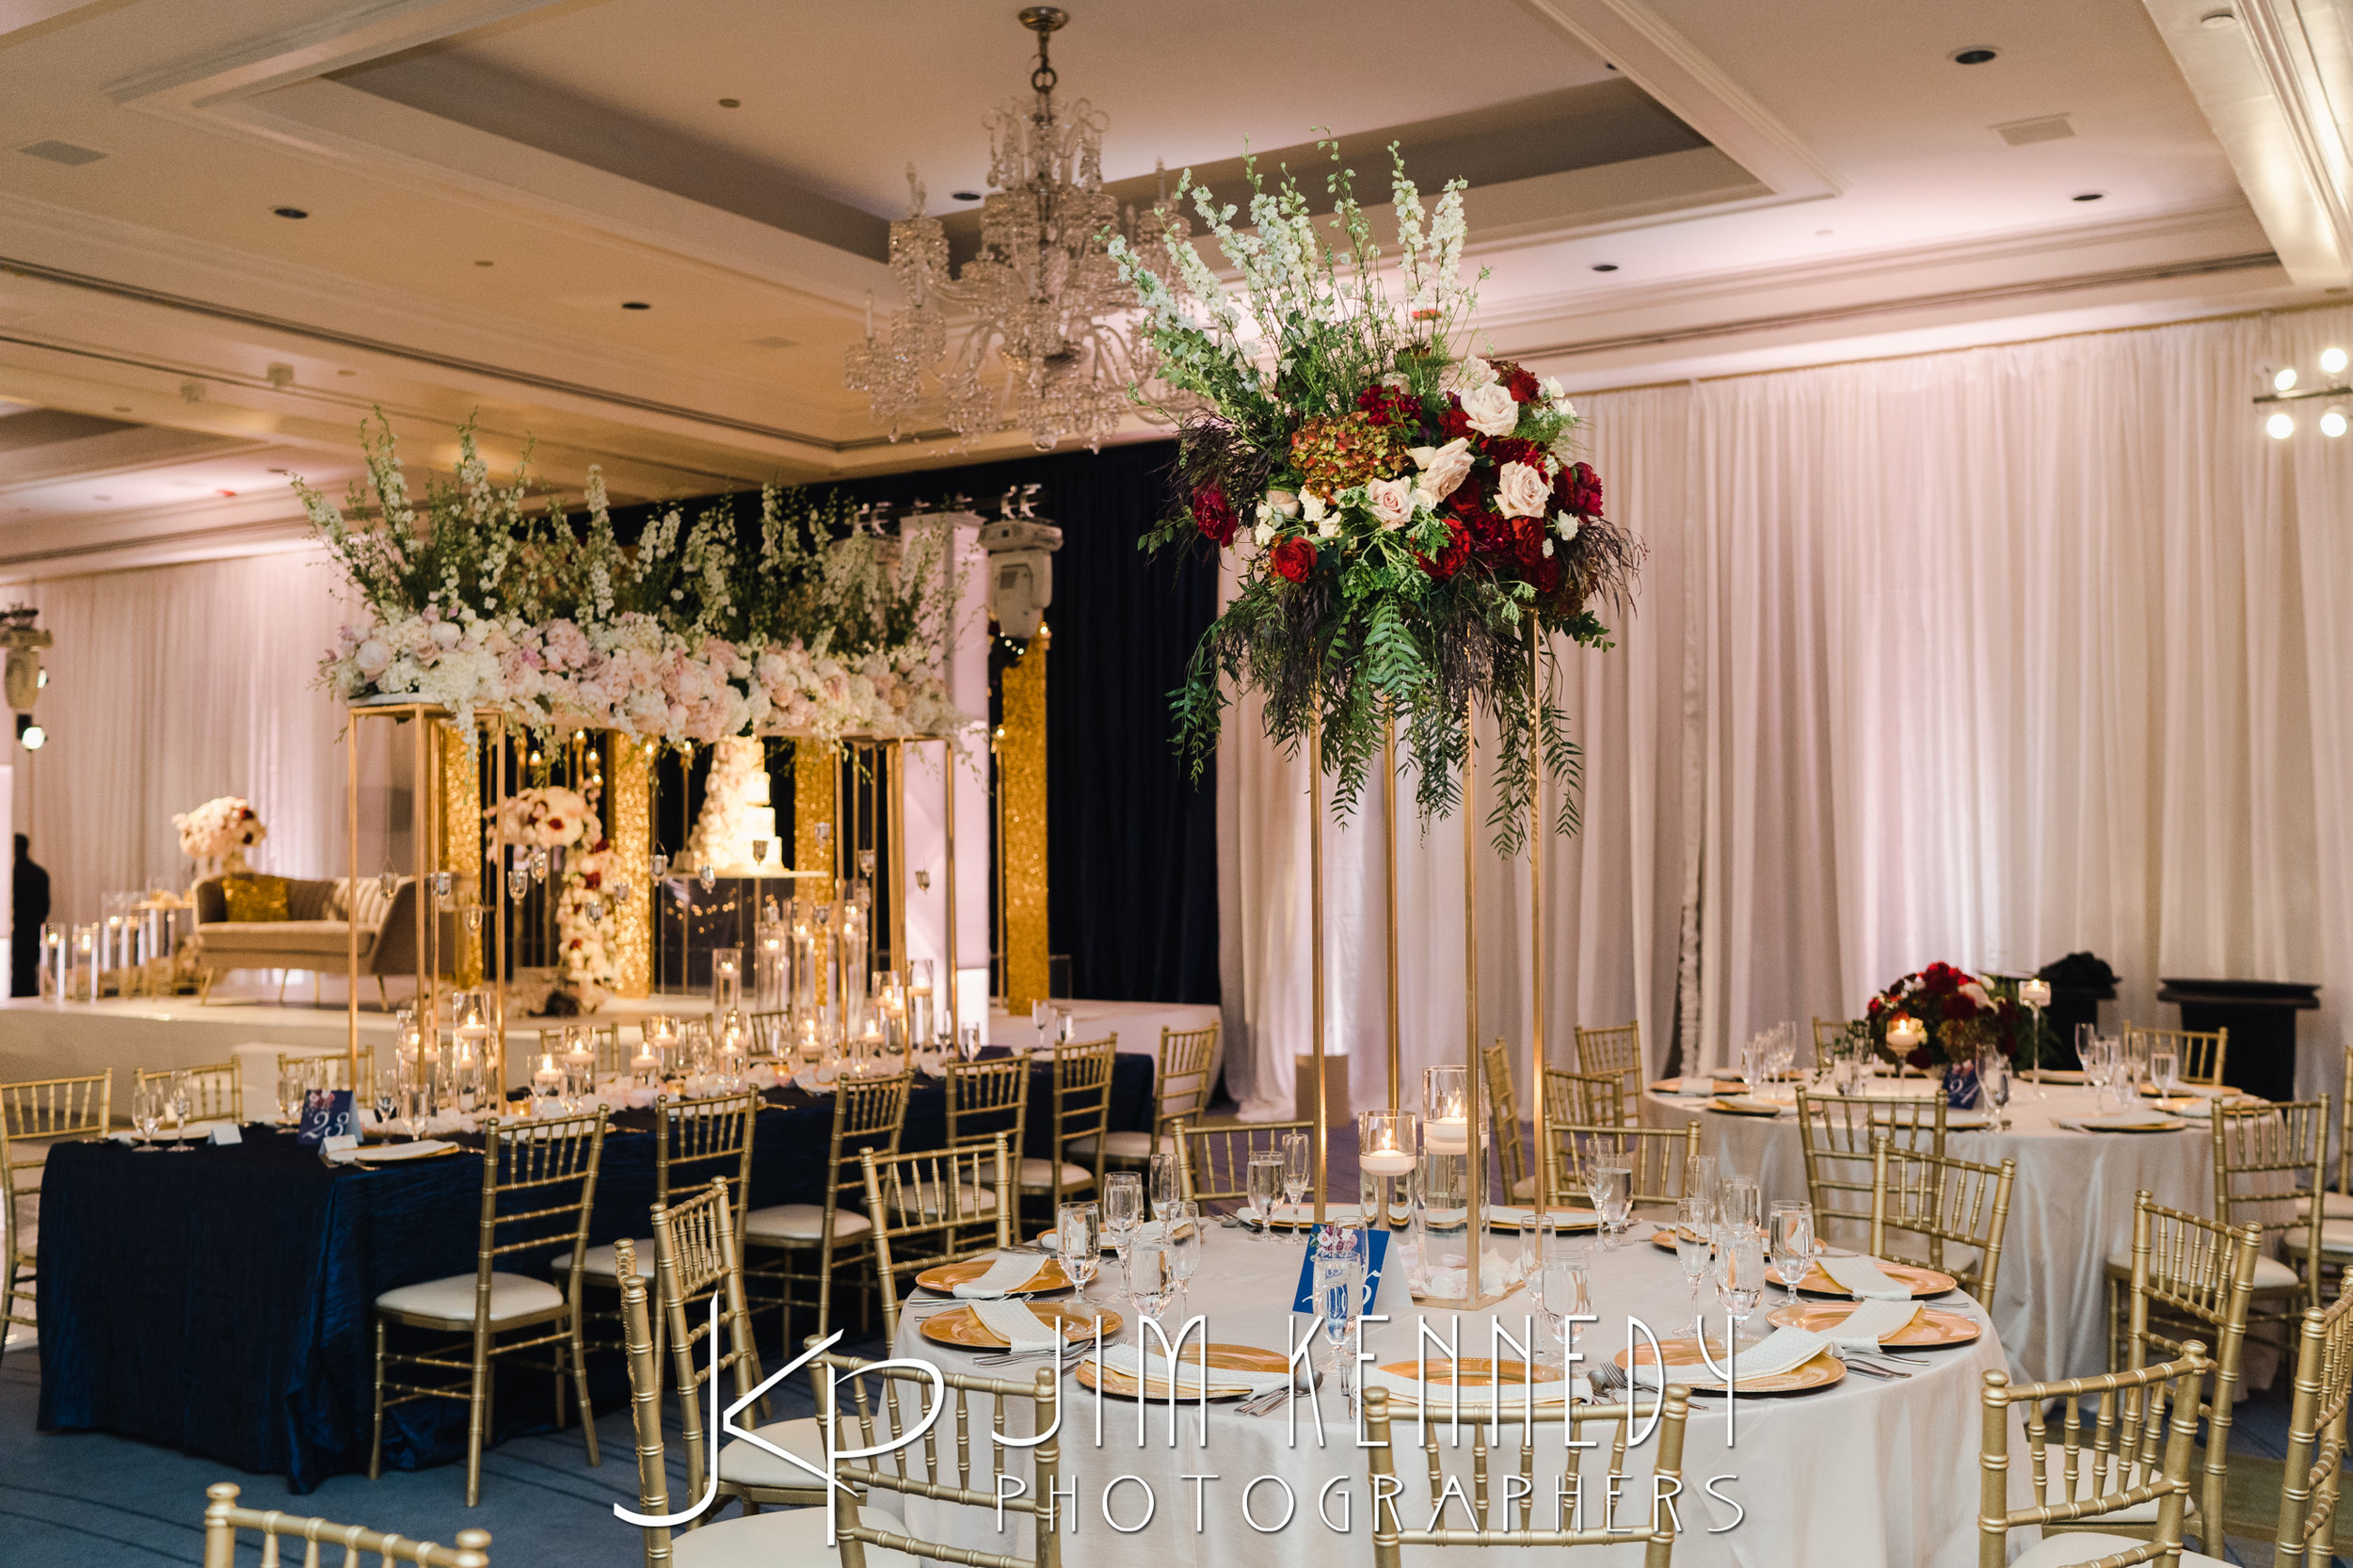 ritz-carlton-wedding-janaki-sameer_0219.JPG